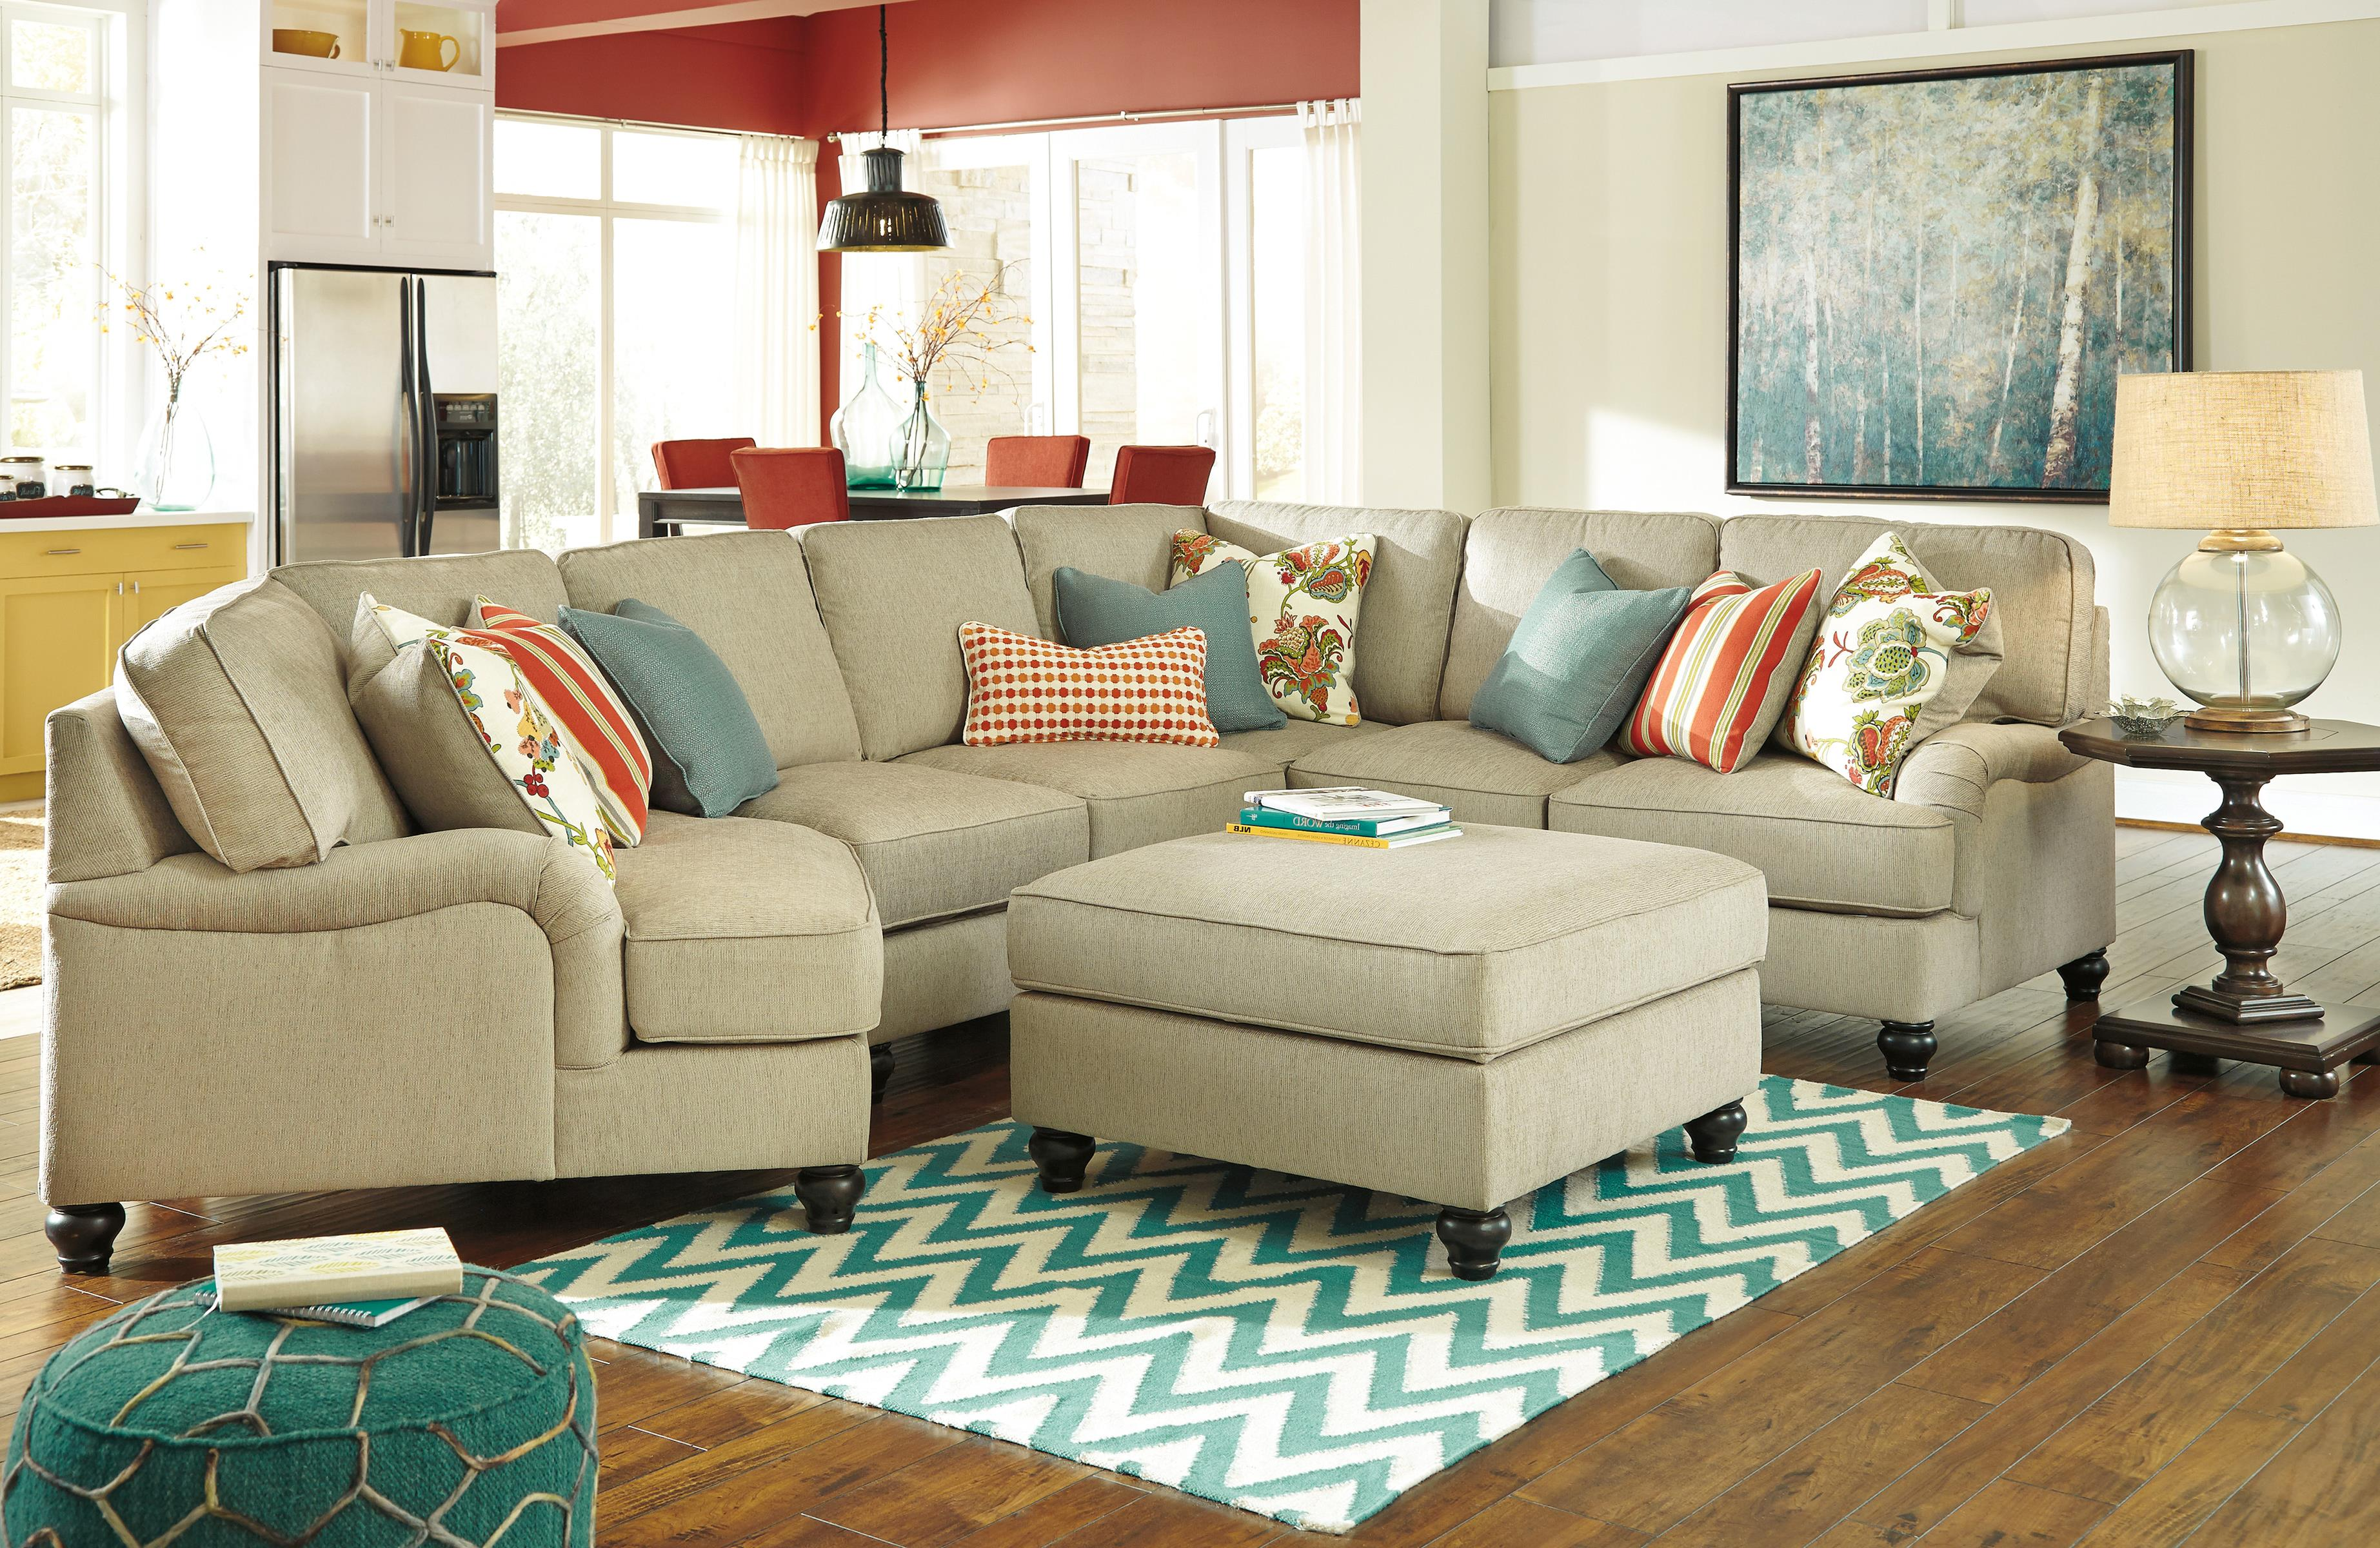 Benchcraft Kerridon Stationary Living Room Group - Item Number: 26300 Living Room Group 9